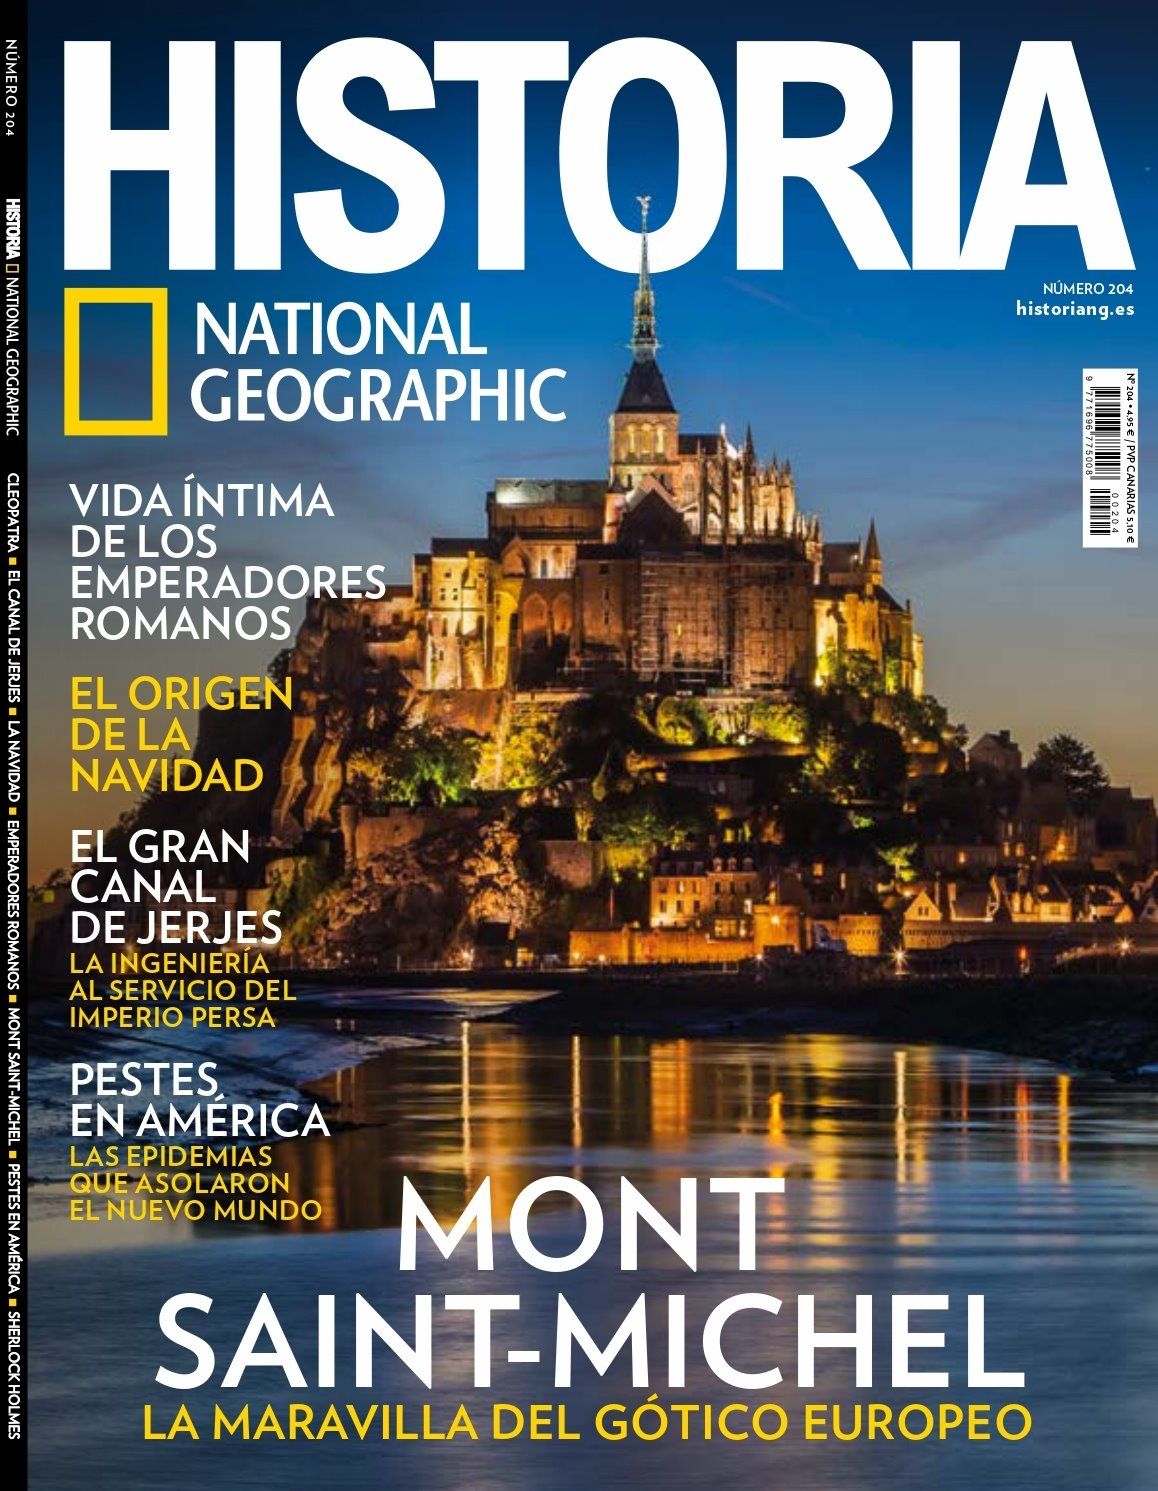 Historia National Geographic 204